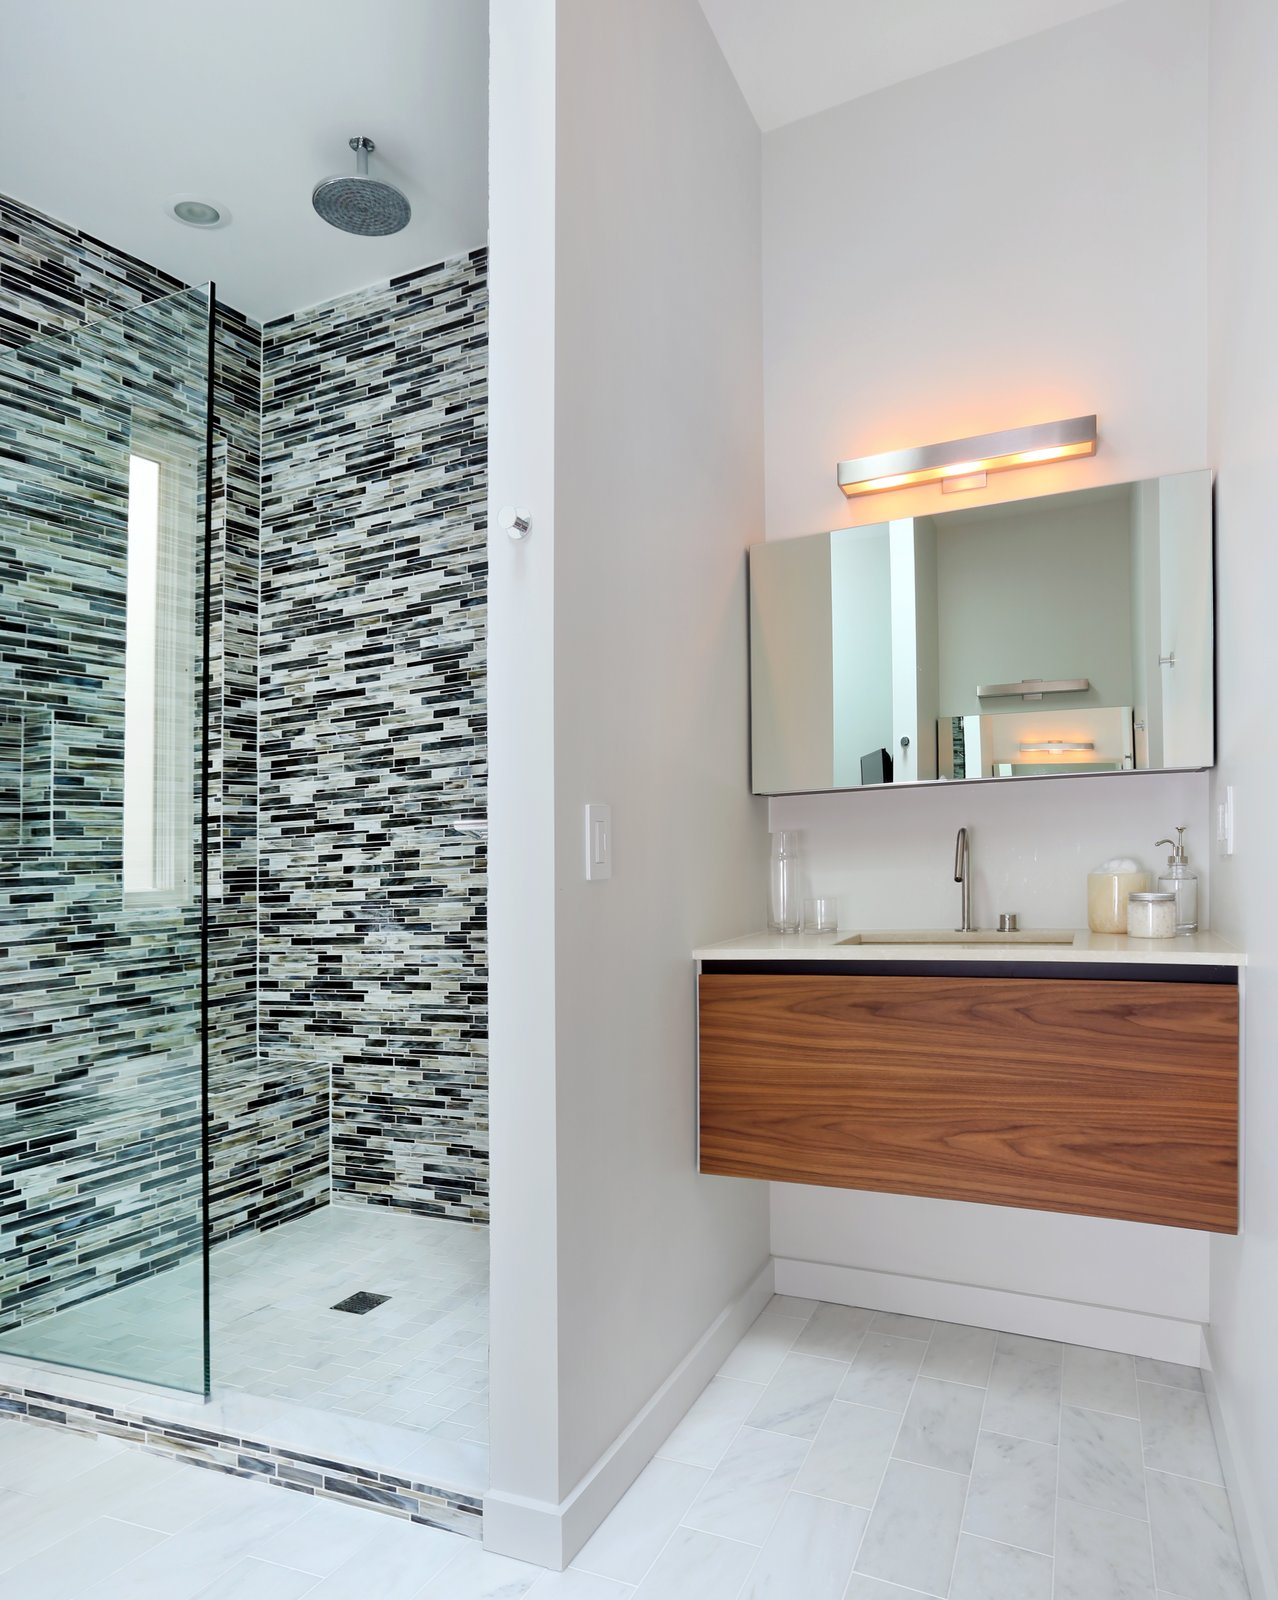 In the master bathroom, glass tile clads the shower and Carrara marble lines the floor. The shower fixtures are Hansgrohe.